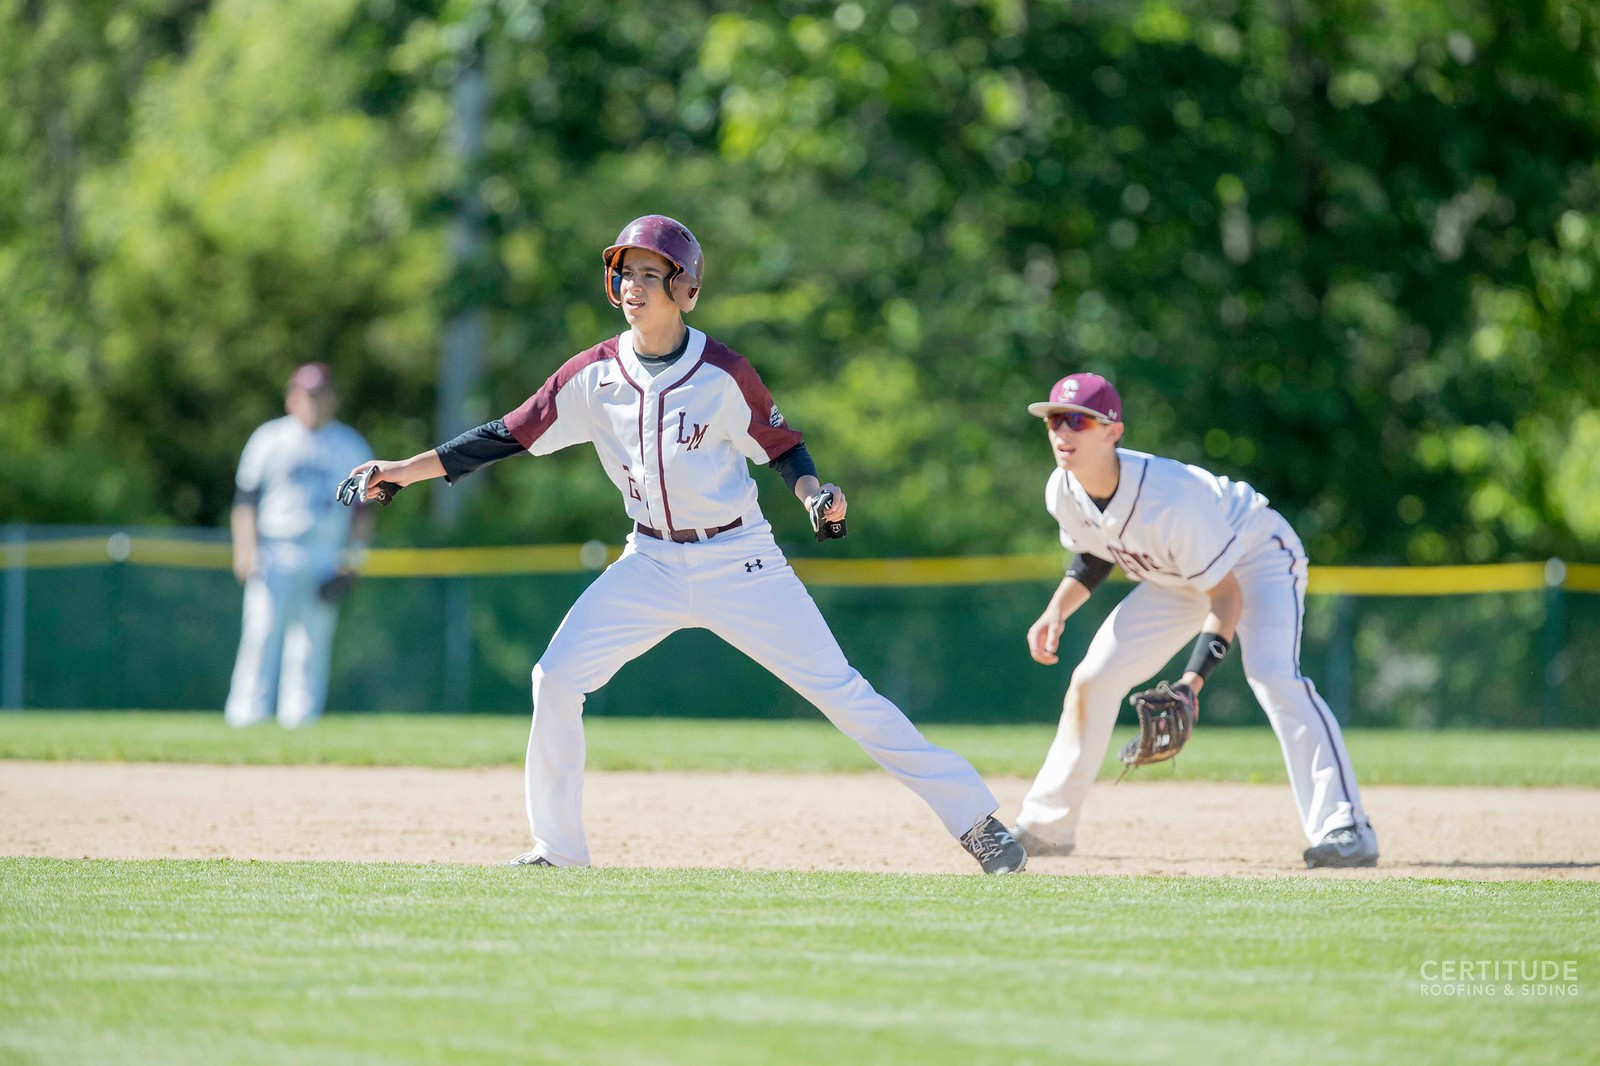 Lower_Merion_BASEBALL_vs_Conestoga-155